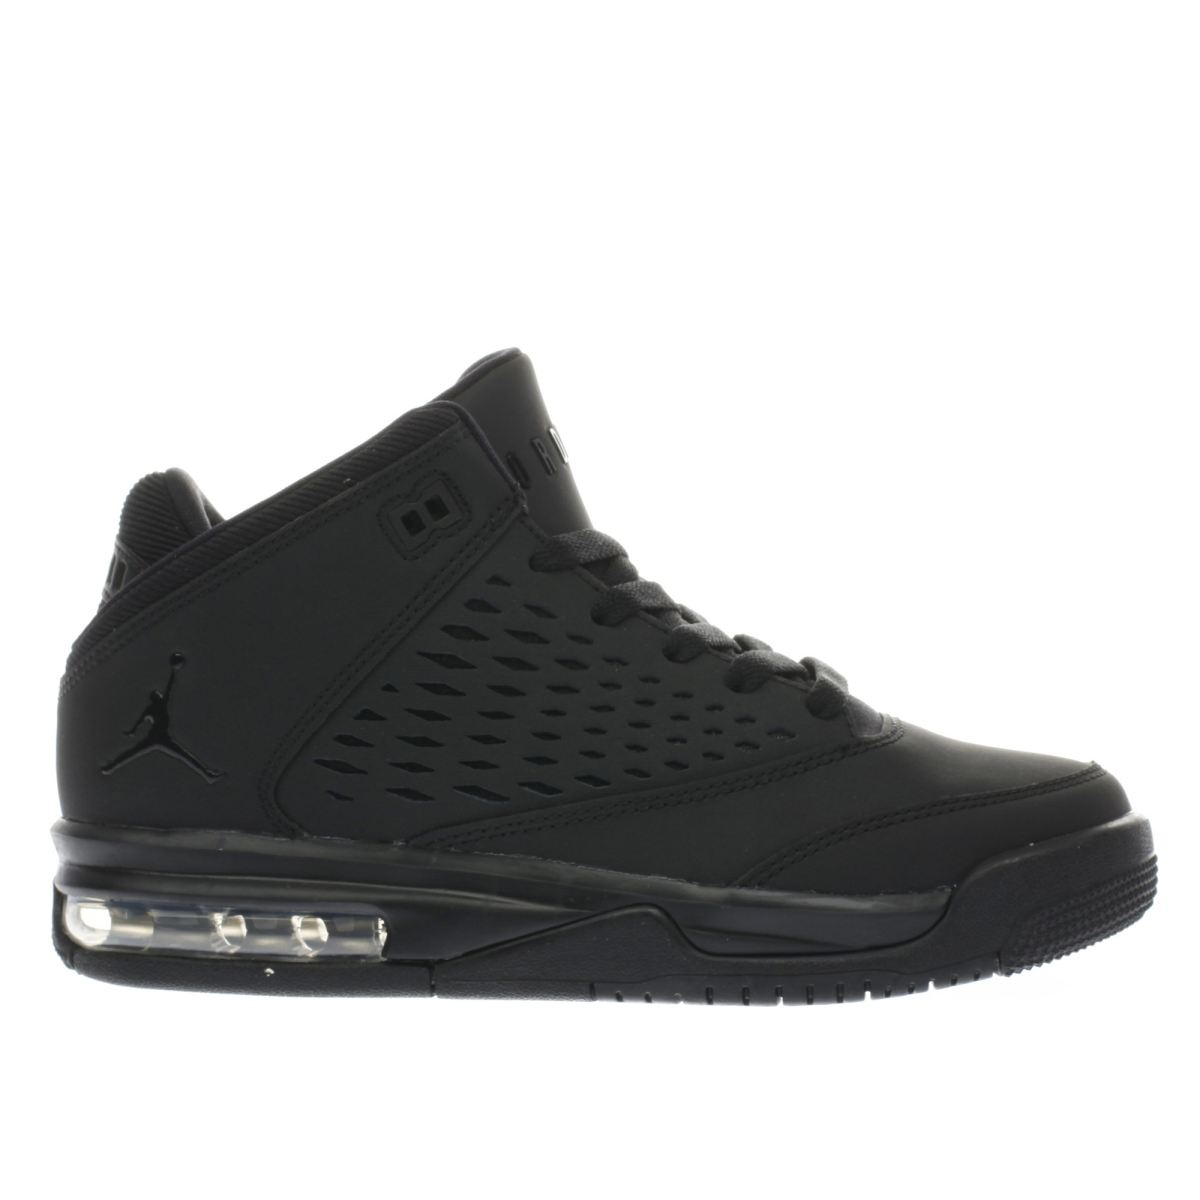 nike jordan black nike flight origin 4 Youth Trainers